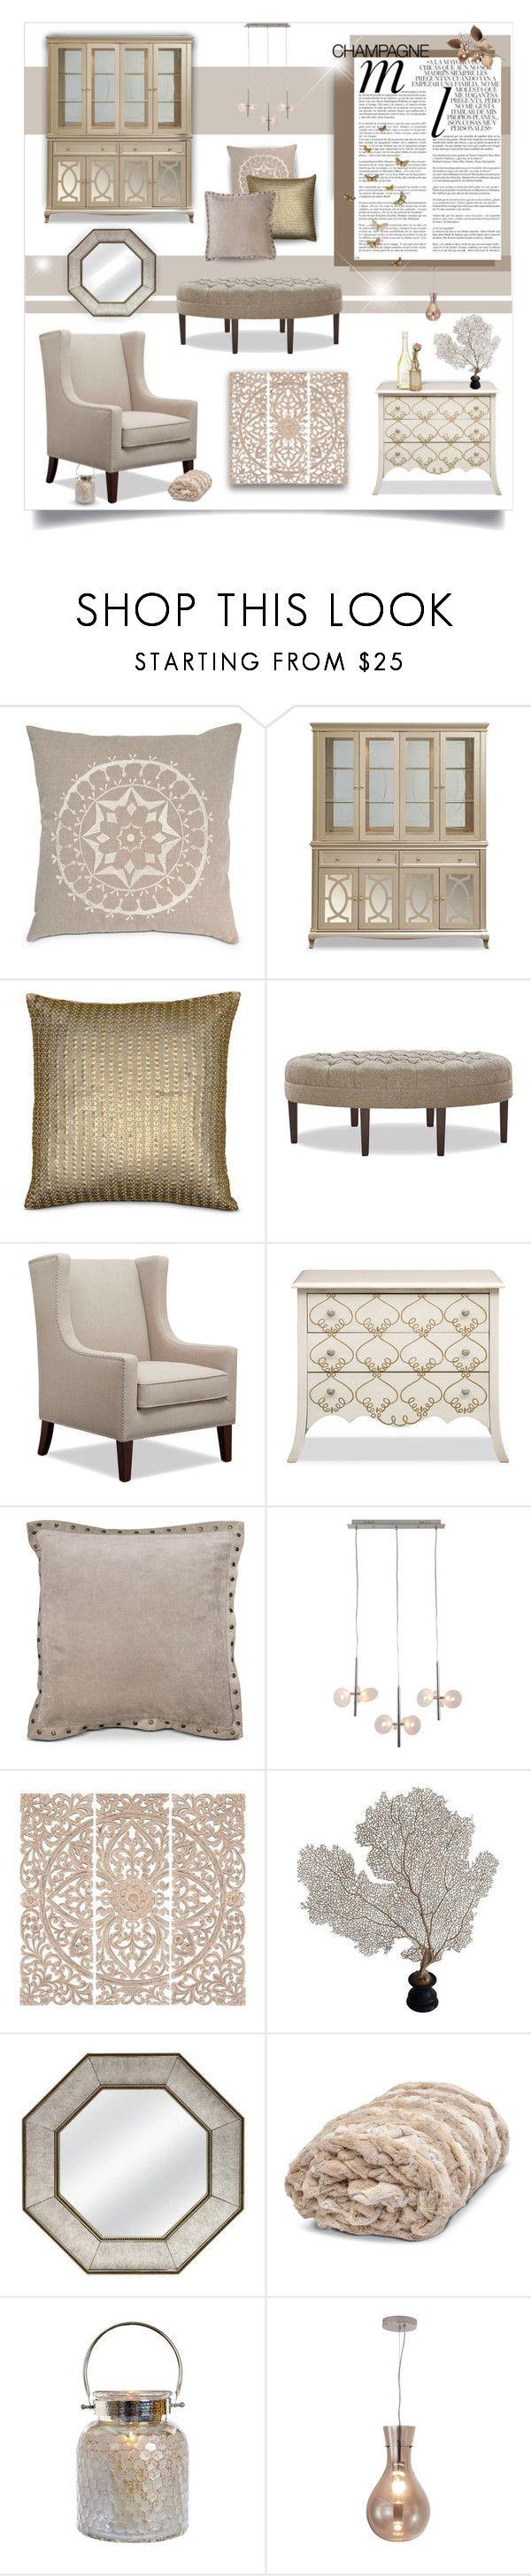 Champagne Shade By Amsigfurniture On Polyvore Featuring Interior,  Interiors, Interior Design, Home,